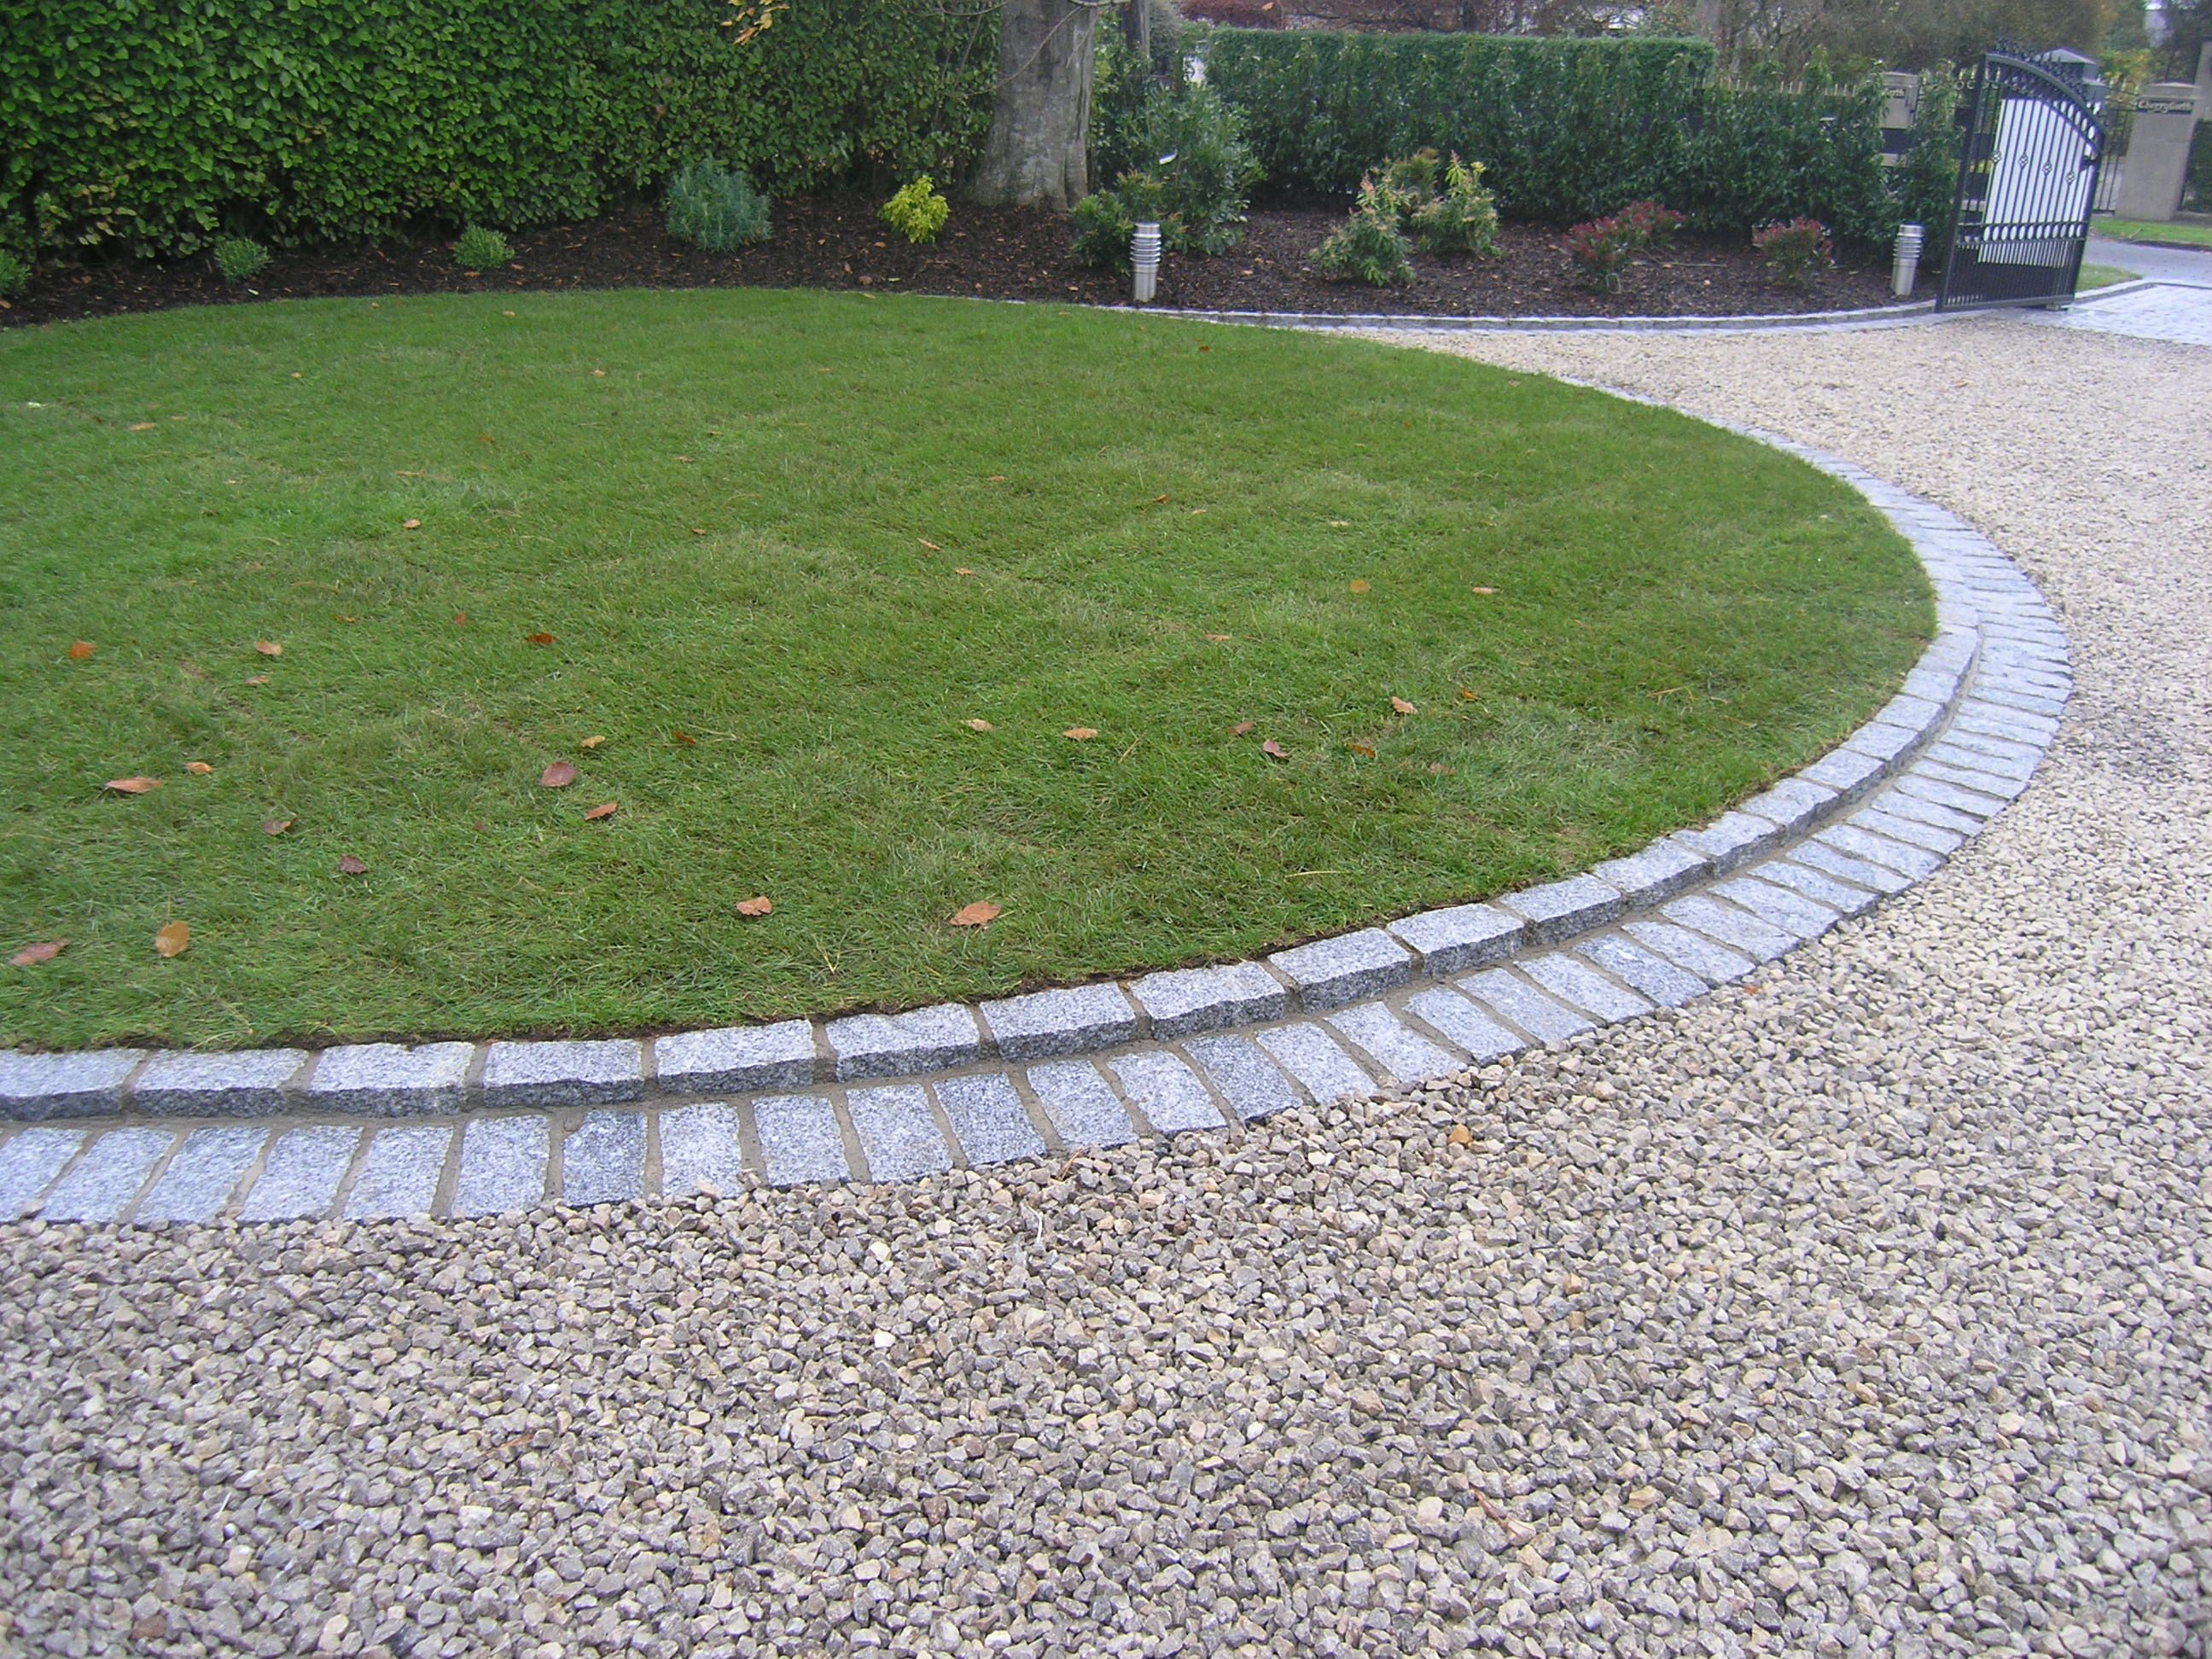 gravel driveways can be very elegant when edged nicely - Driveway Design Ideas